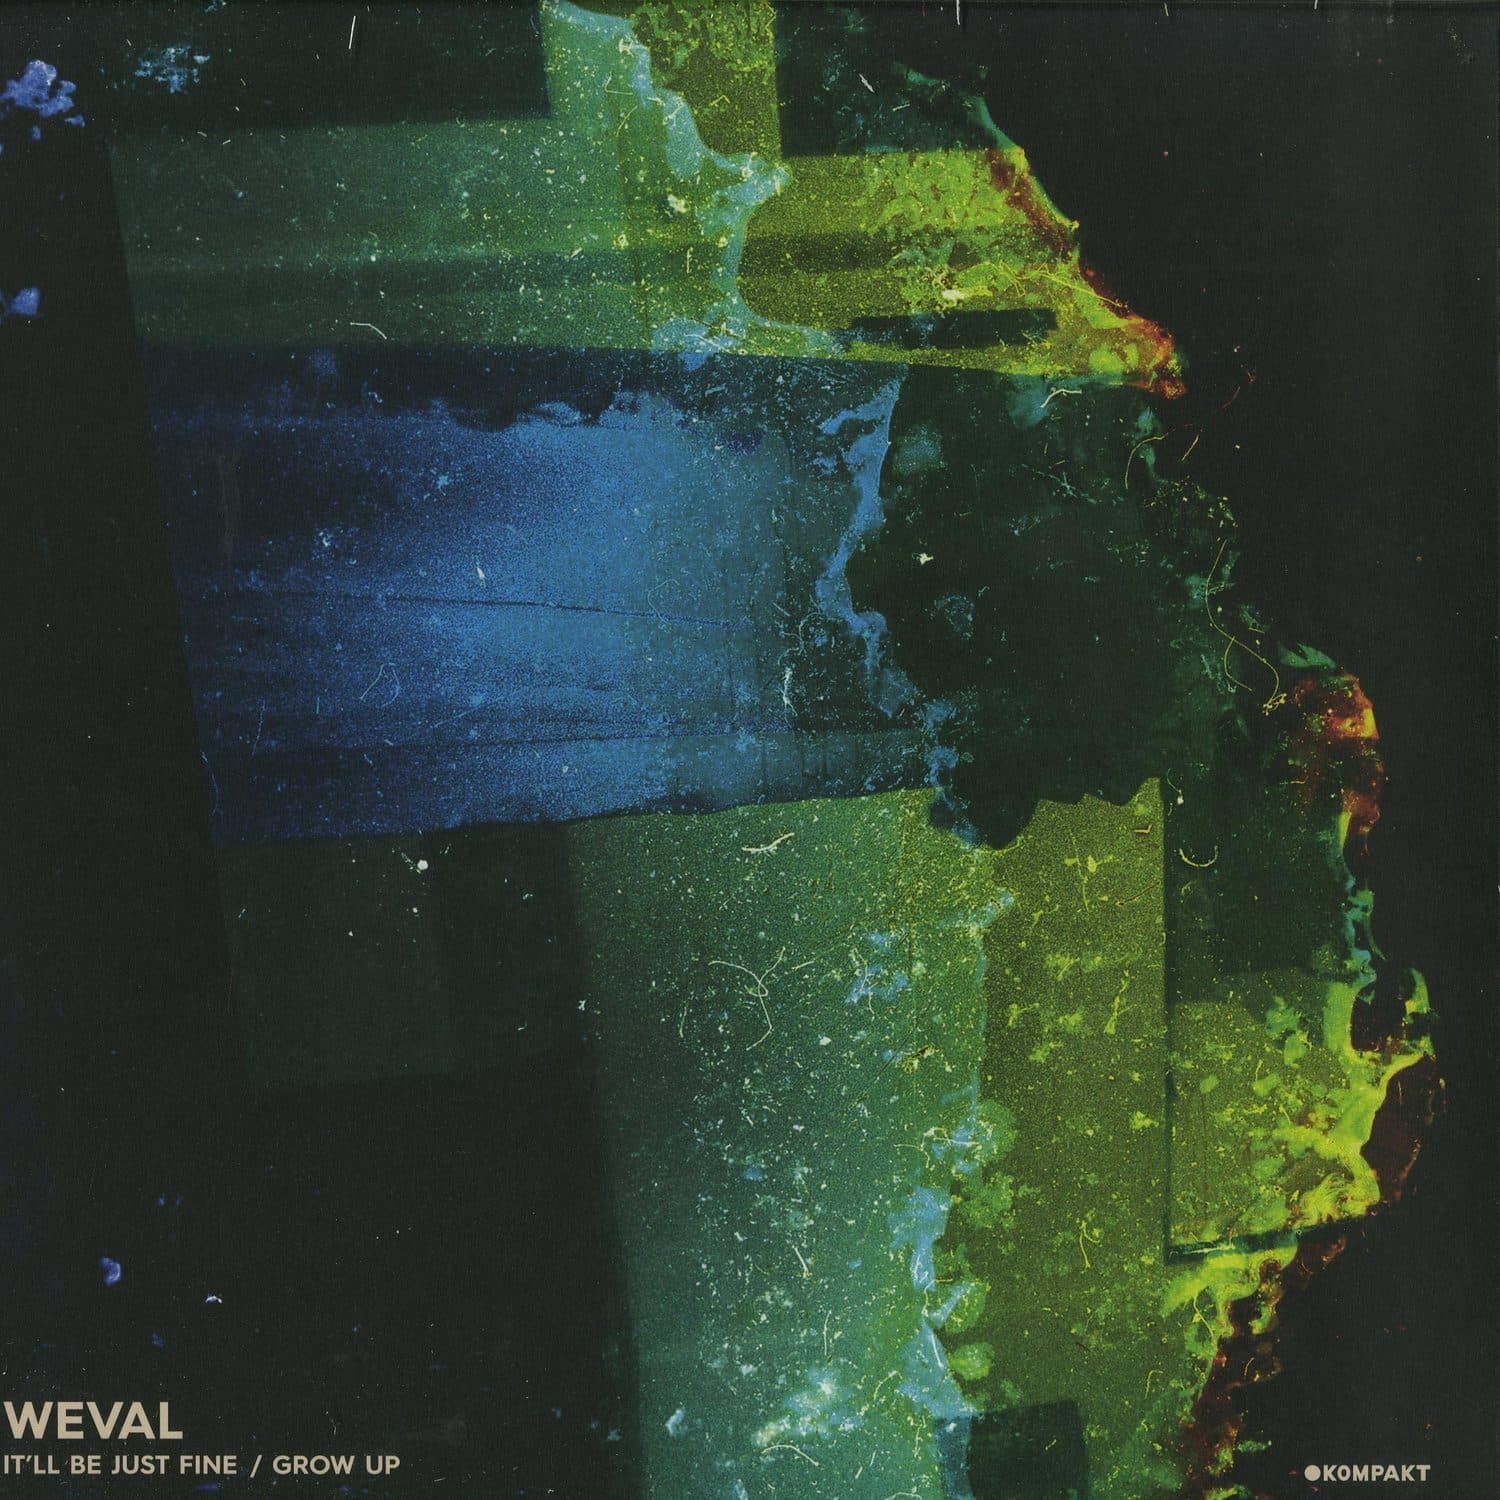 Weval - IT LL BE JUST FINE / GROW UP